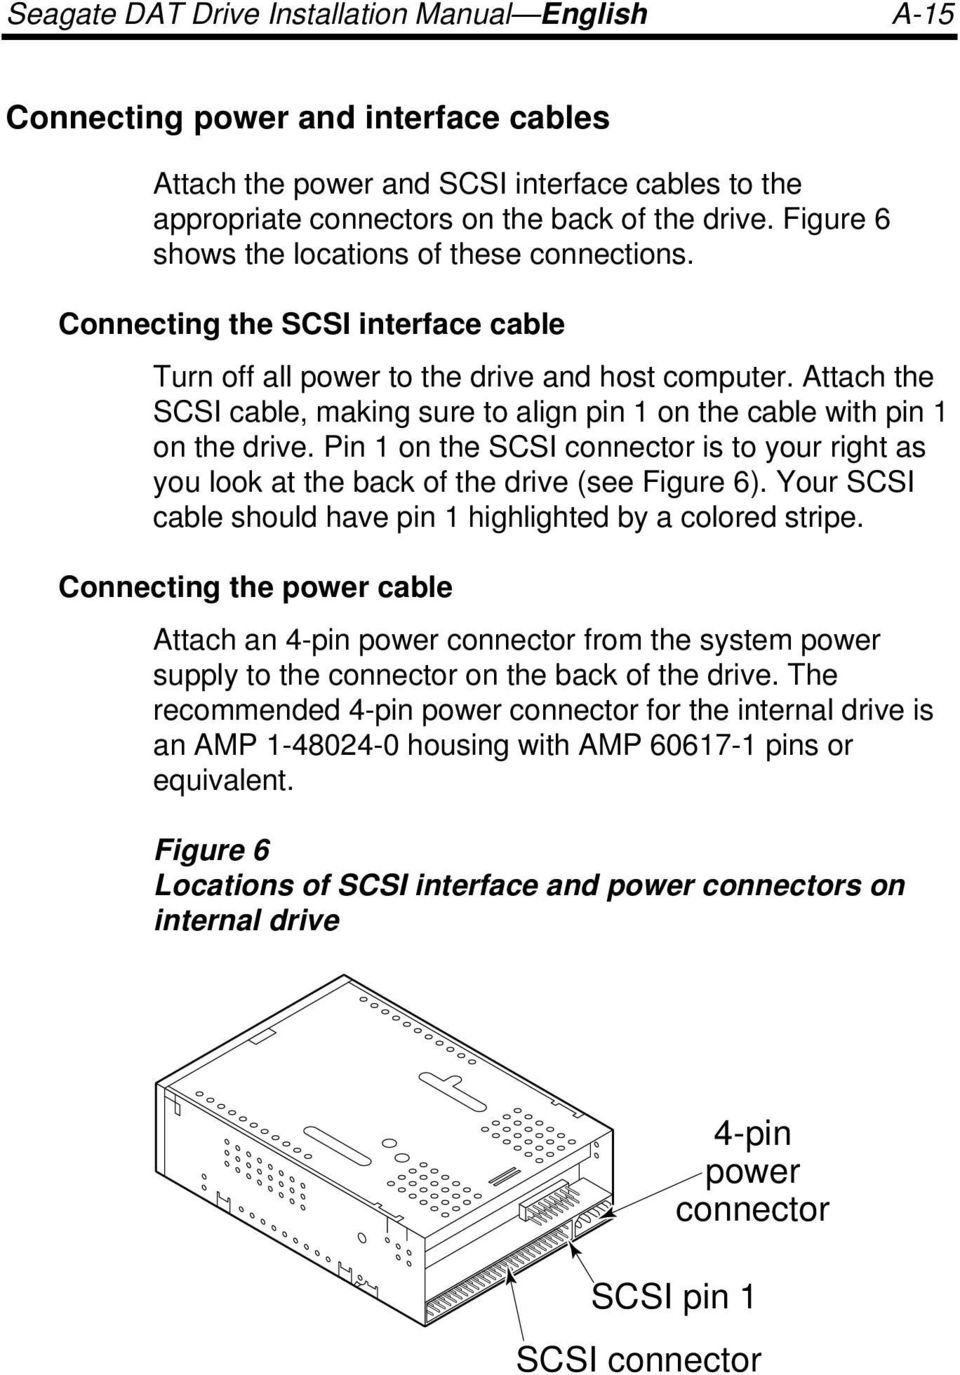 Attach the SCSI cable, making sure to align pin 1 on the cable with pin 1 on the drive. Pin 1 on the SCSI connector is to your right as you look at the back of the drive (see Figure 6).